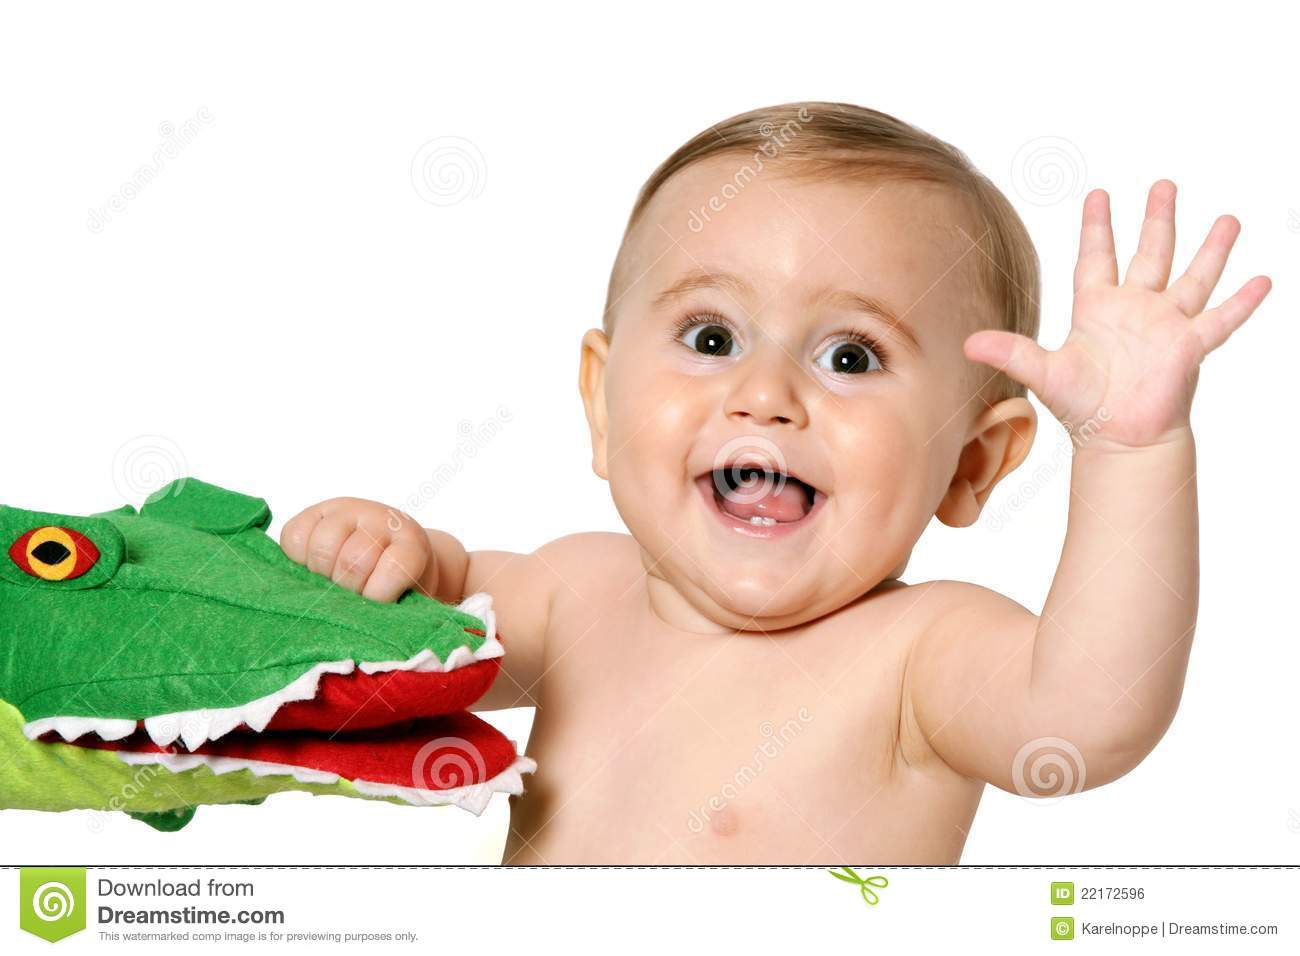 Infant With Toy Waving Hand Royalty Free Stock Image - Image: 22172596